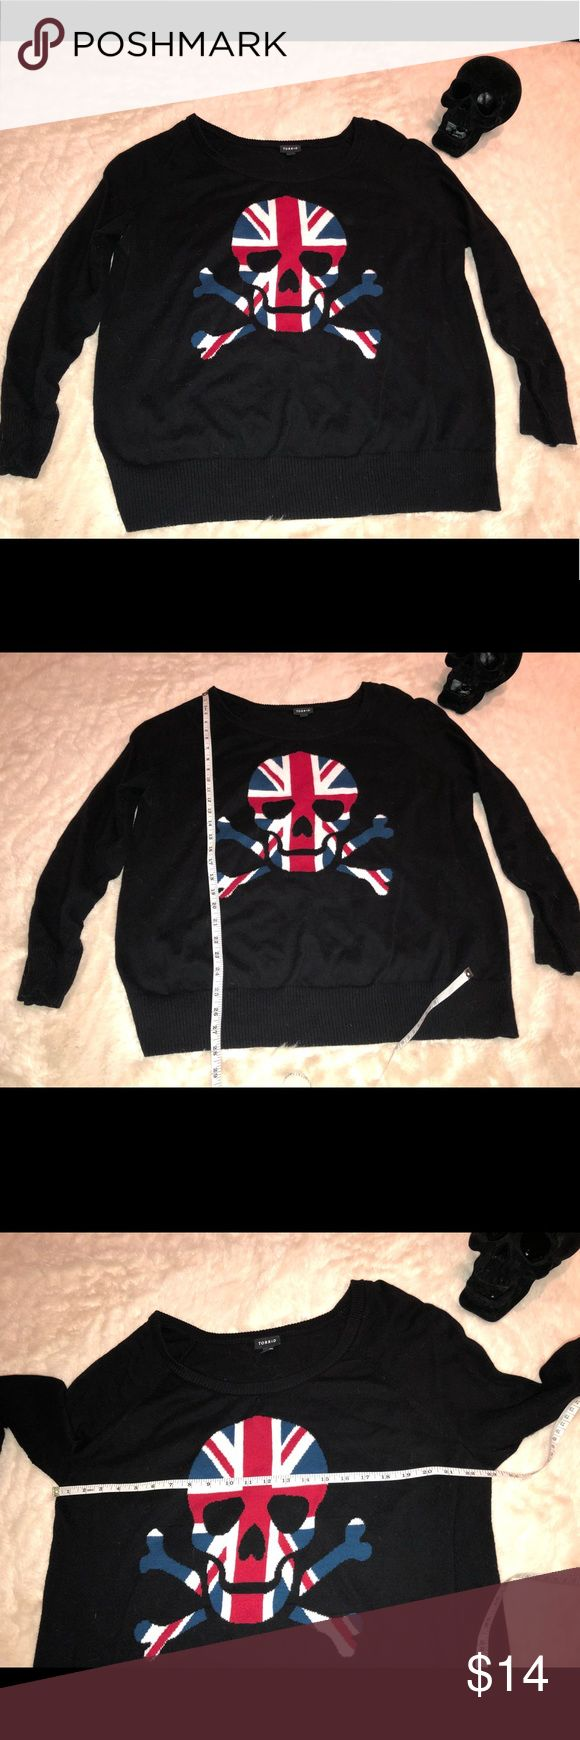 Torrid UK British skull sweater plus size 2 Torrid skull sweater plus size 2 with a cute UK skull on the front. There is some pulling on the sweater/sleeves as shown in pictures  All items come from smoke free home. 🐺Husky friendly environment. All items are kept in plastic containers, but shed happens 😊 torrid Sweaters